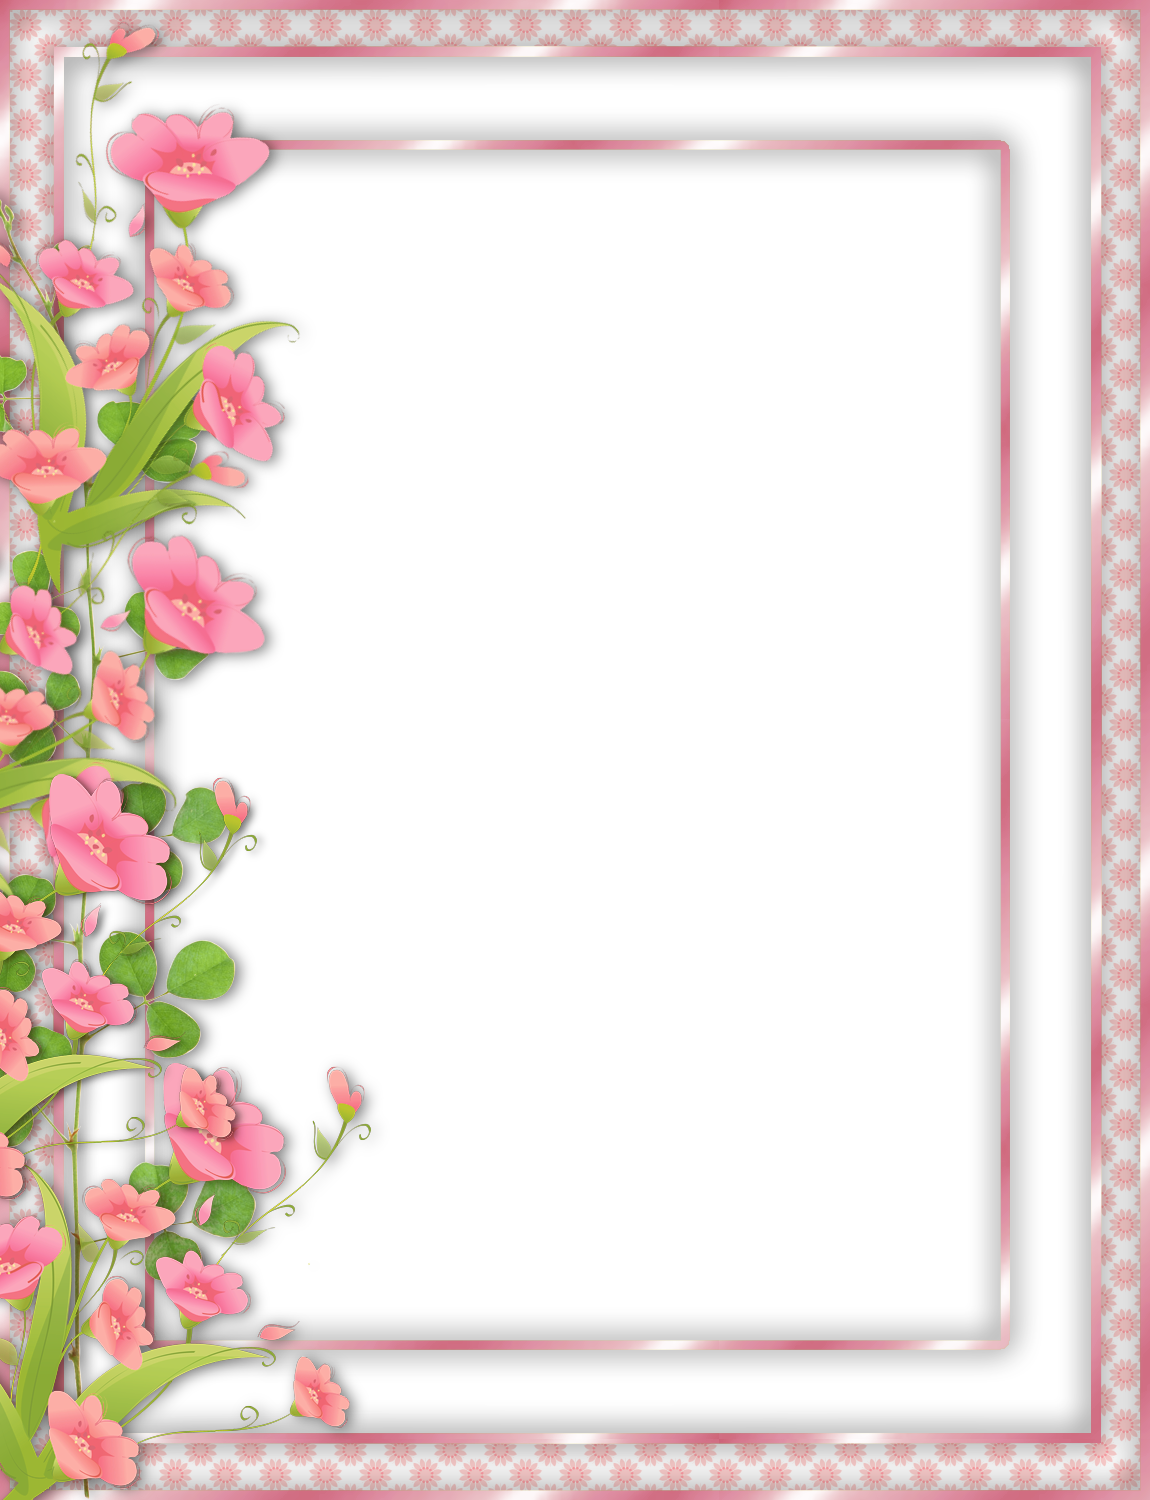 Pink Transparent PNG Frame with Flowers | border | Pinterest ...